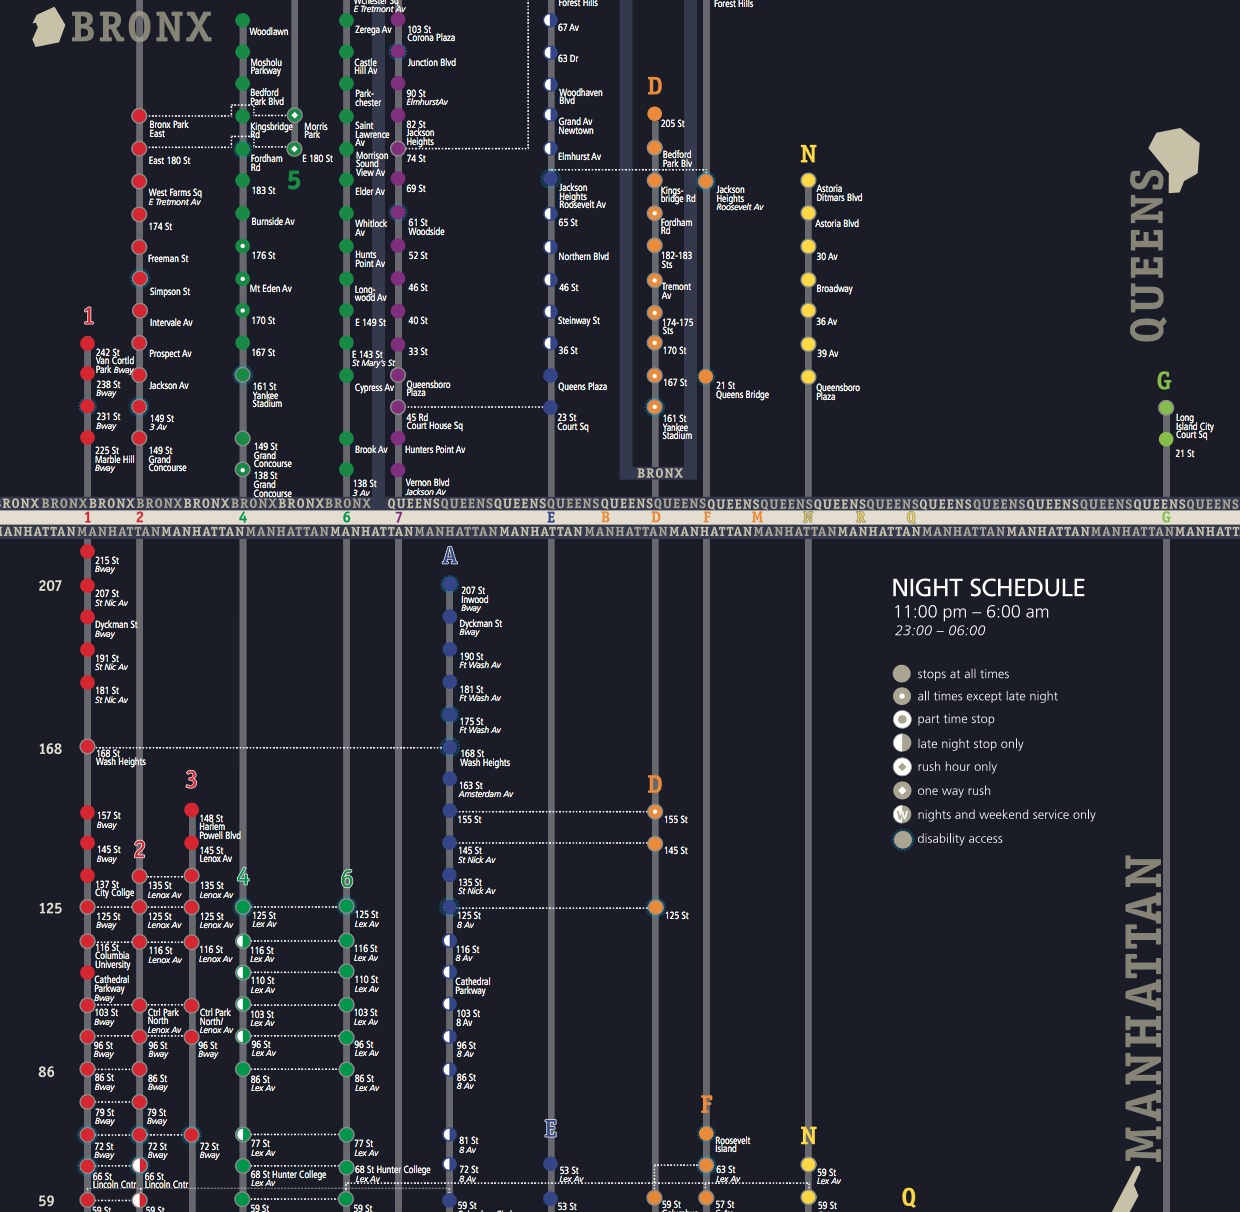 The NYC Subway map redesign for the nighttime schedule.